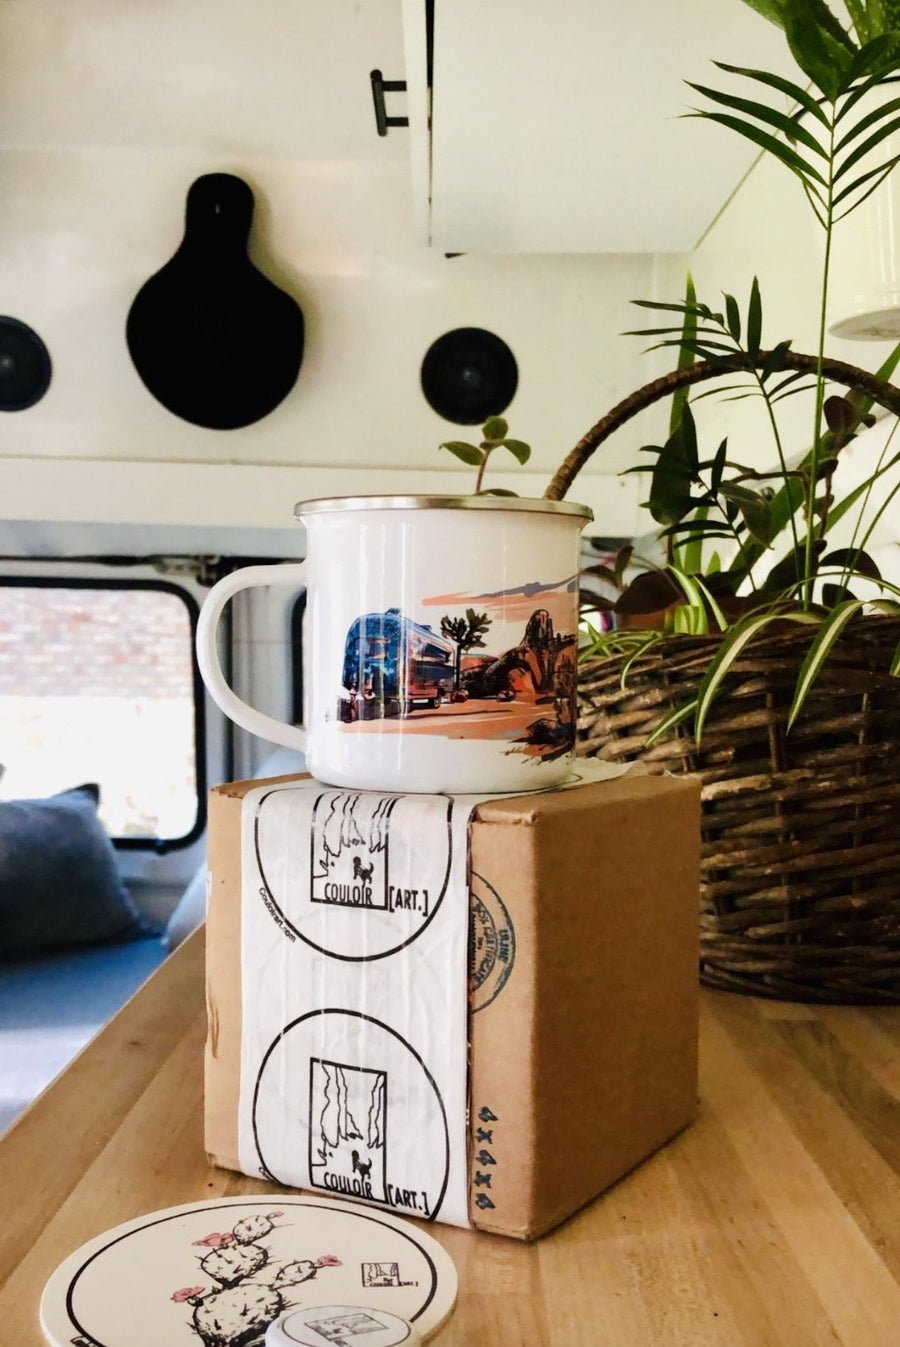 Joshua tree camp mug in the campervan setting